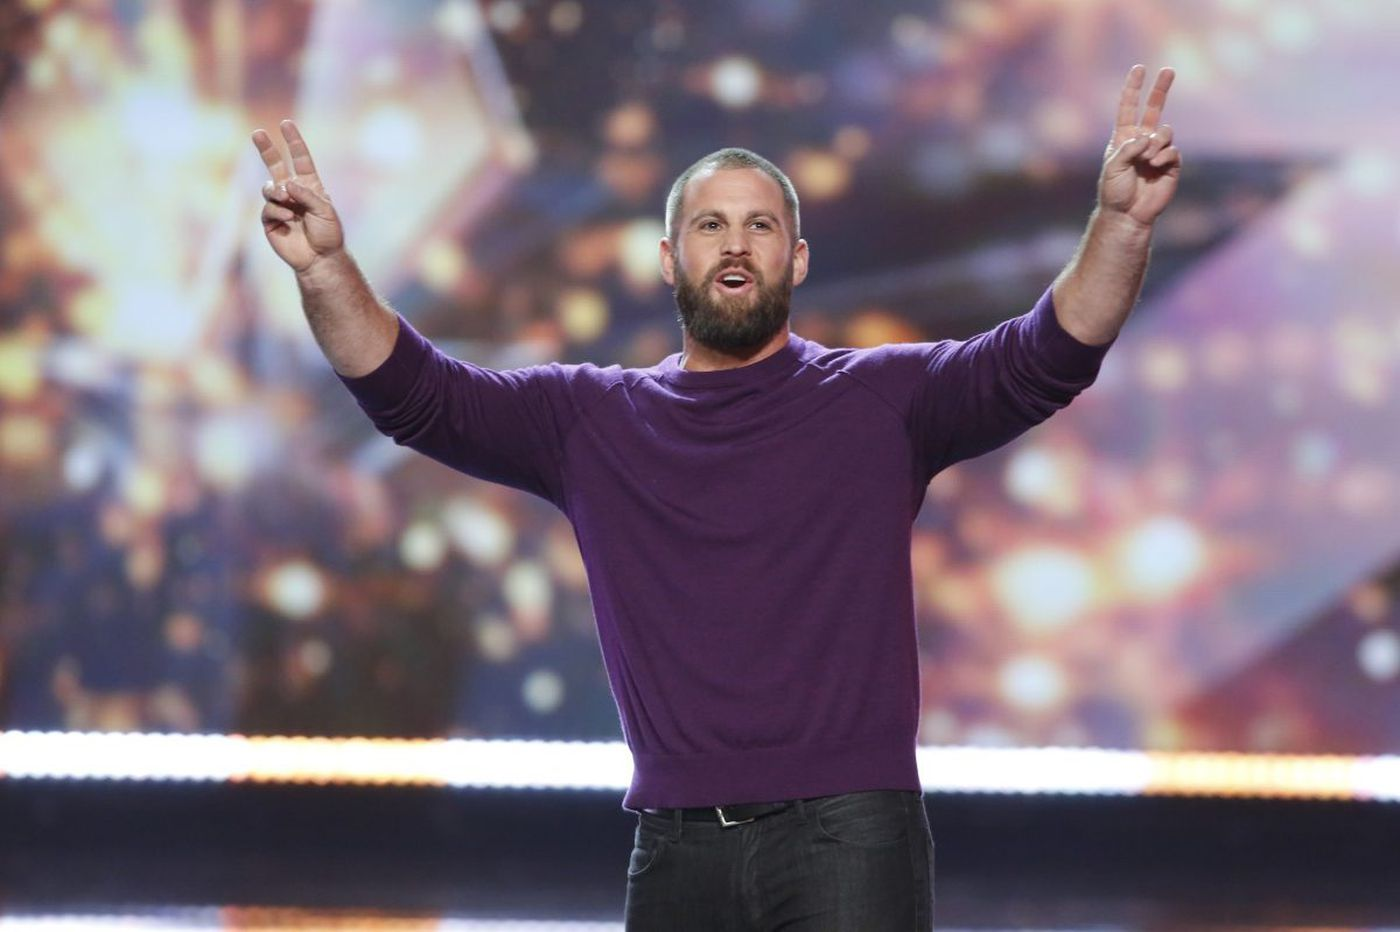 Jon Dorenbos is back to do magic at SugarHouse (ask him about his Super Bowl ring)